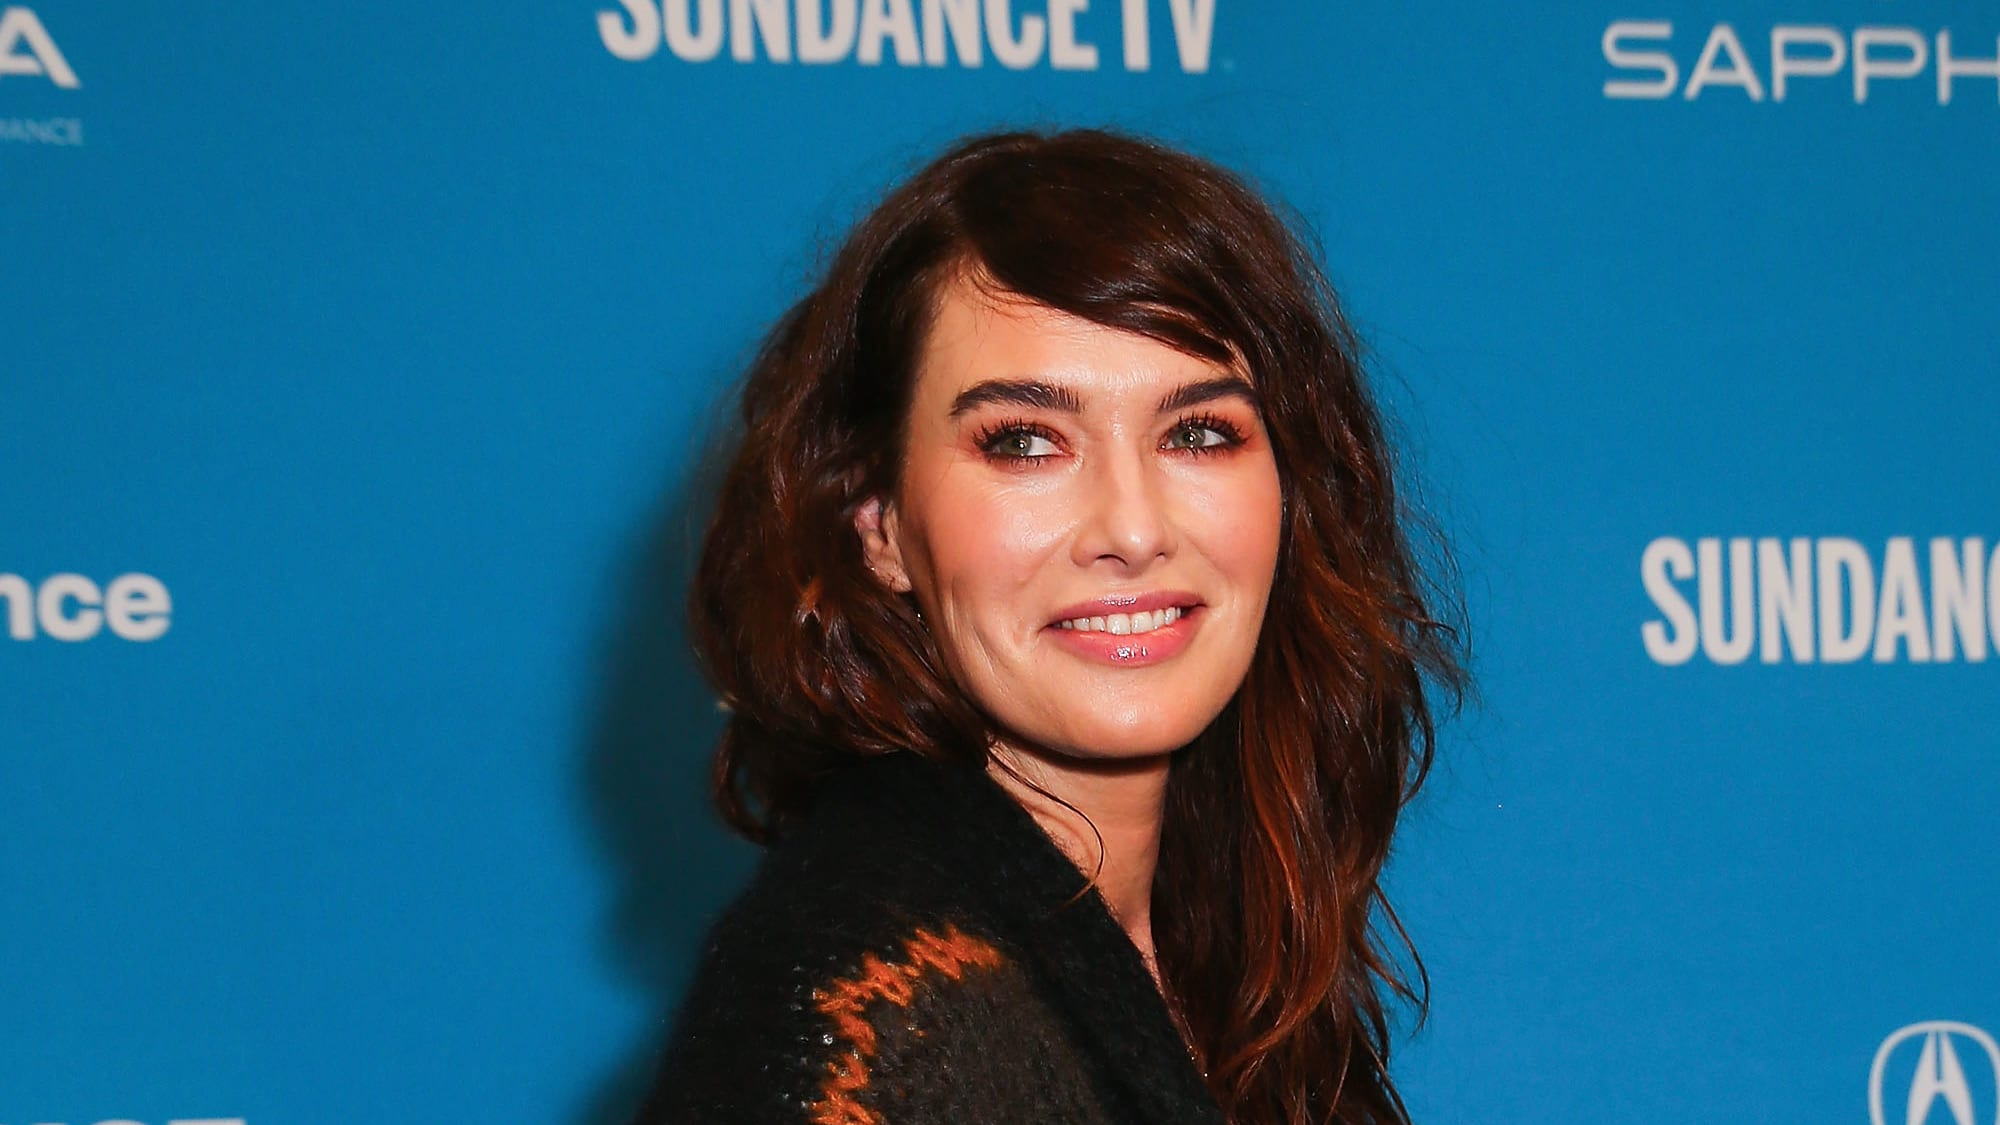 """PARK CITY, UTAH - JANUARY 28: Actress Lena Headey poses for a at a Sundance special screening of """"Fighting with My Family"""" on January 28, 2019 in Park City, Utah. (Photo by Suzi Pratt/Getty Images for Metro Goldwyn Mayer Pictures)"""